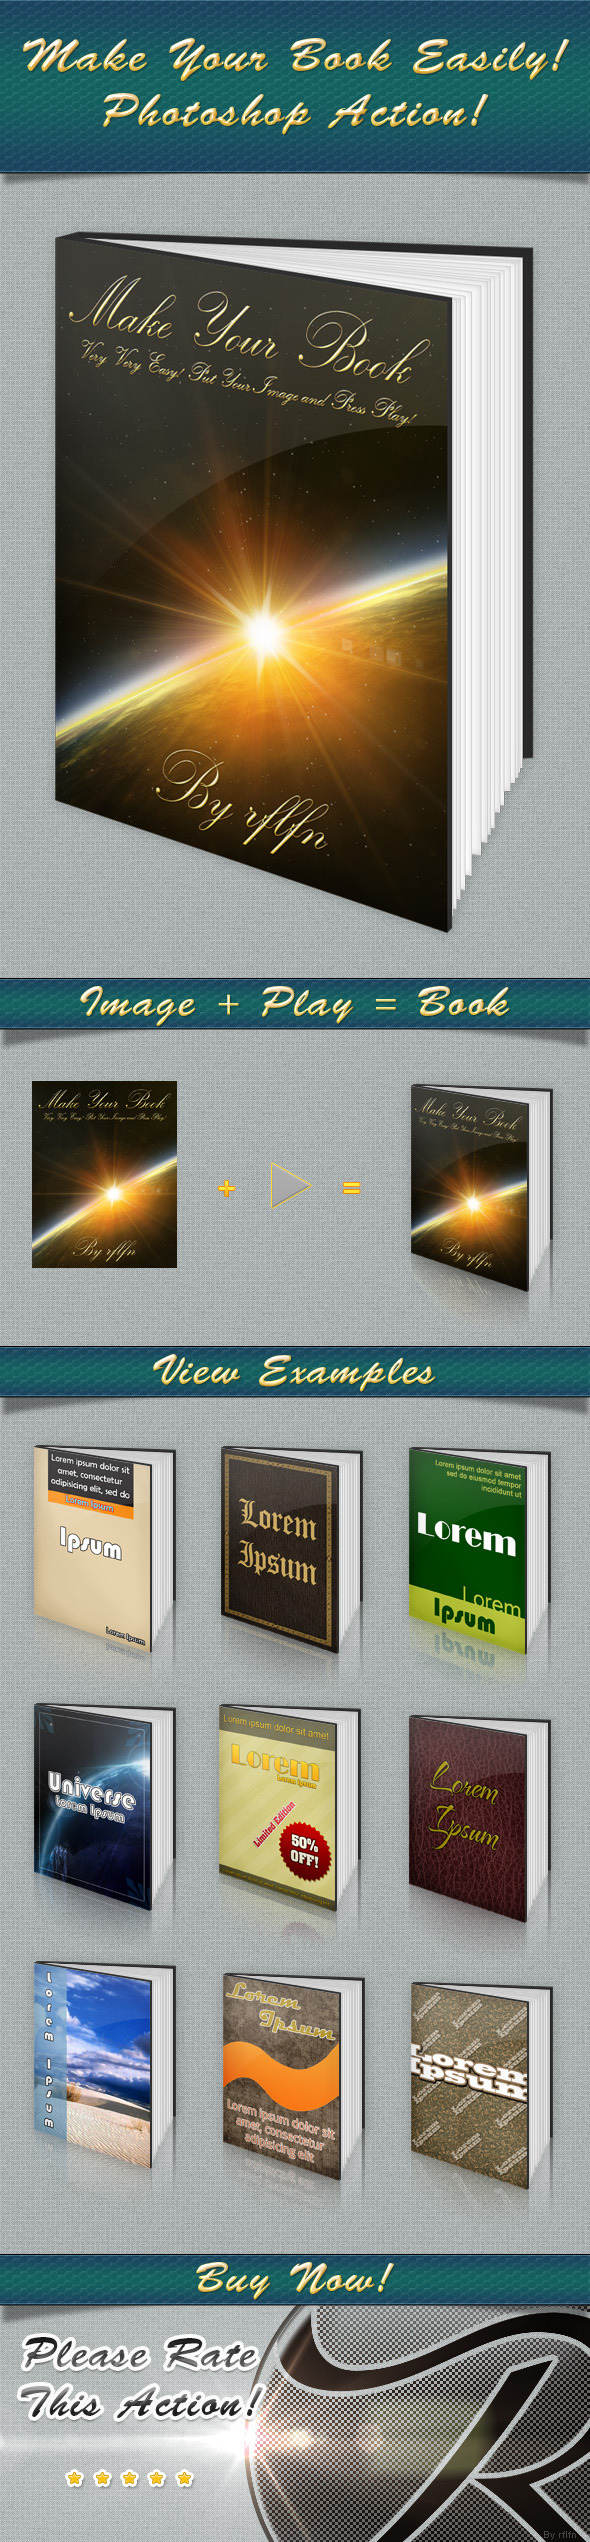 Book Maker - Actions Photoshop